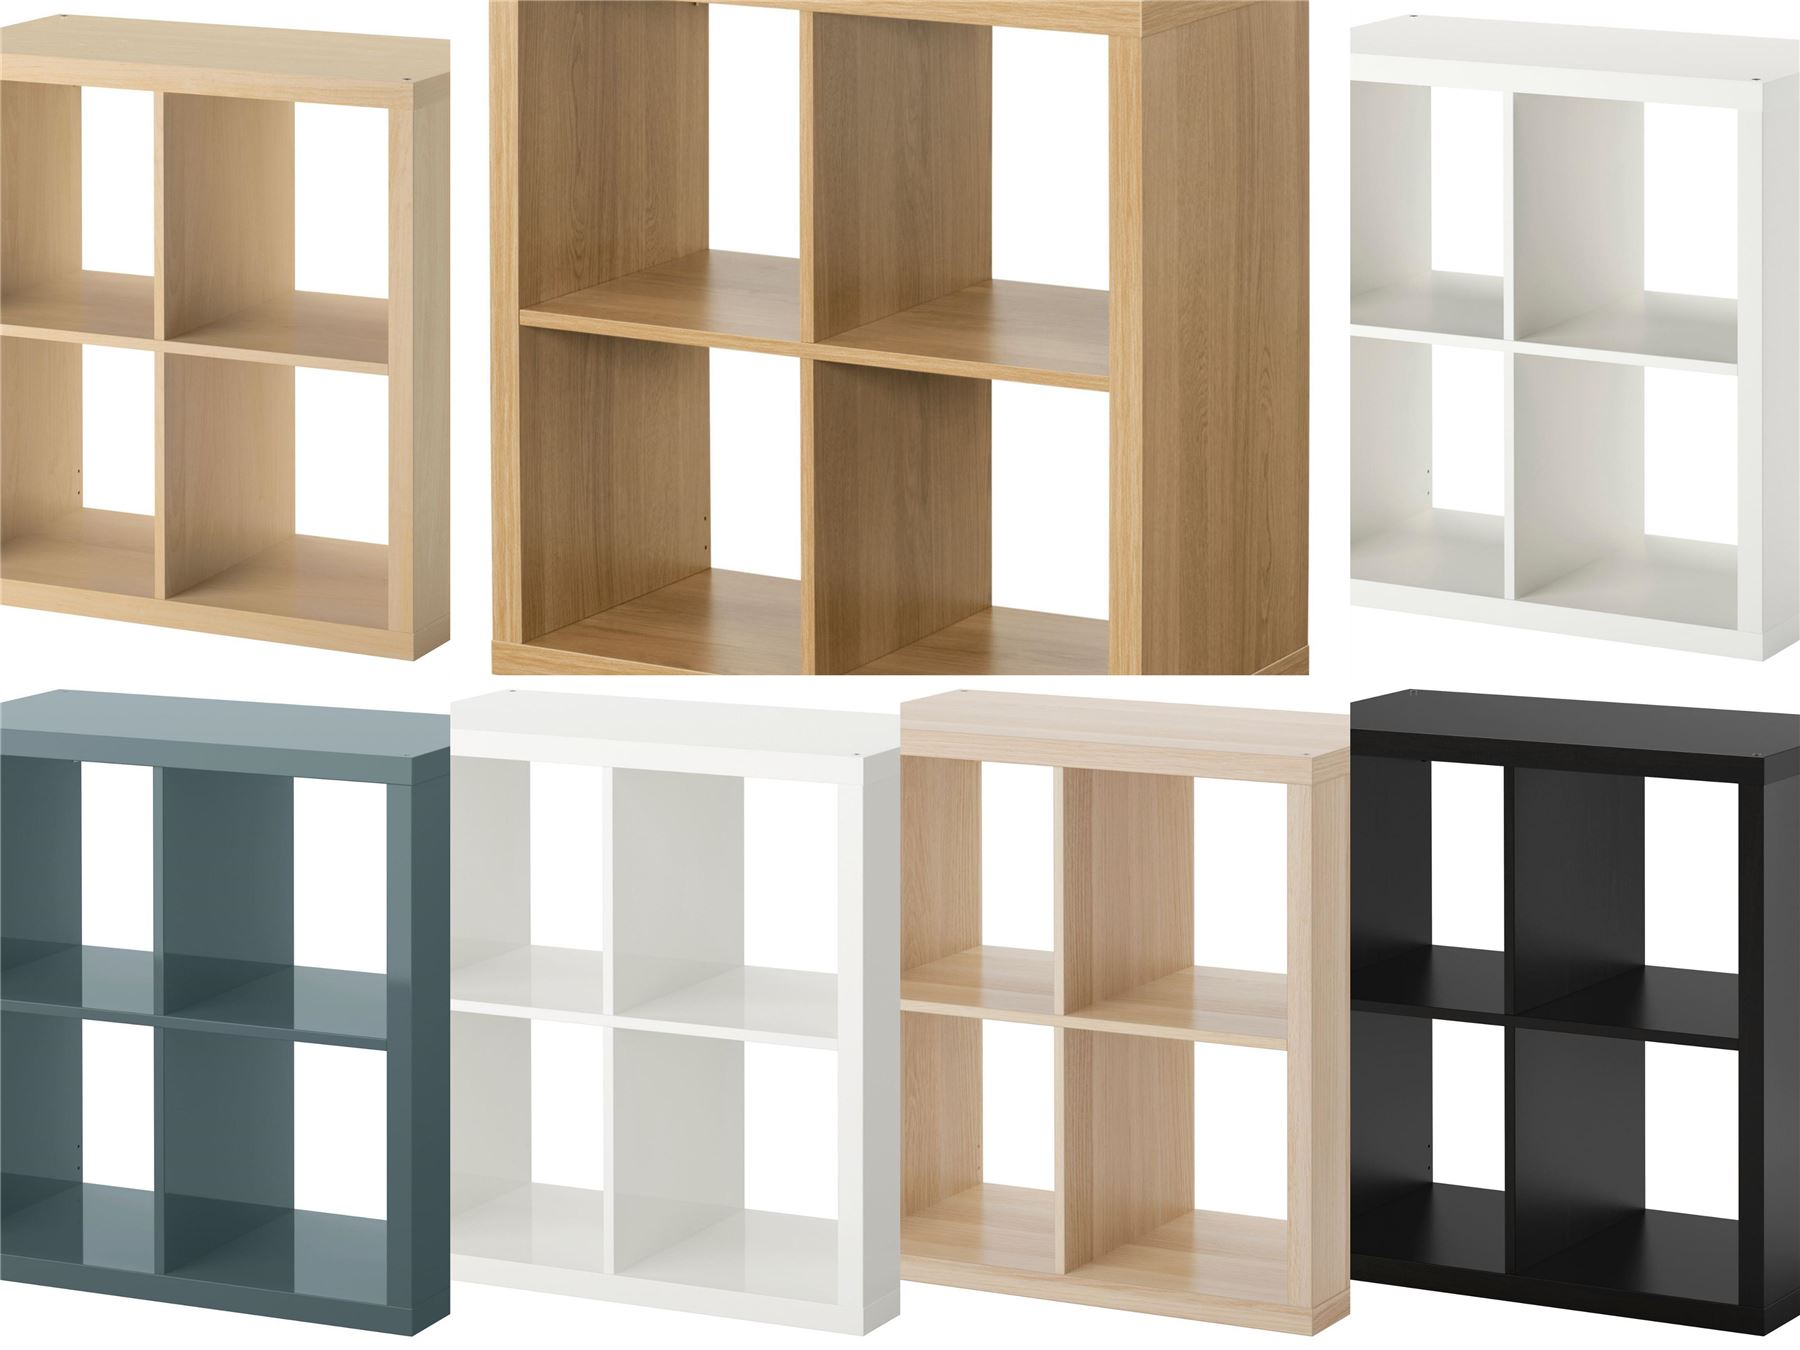 ikea kallax 4 cube storage bookcase square shelving unit various colours ebay. Black Bedroom Furniture Sets. Home Design Ideas